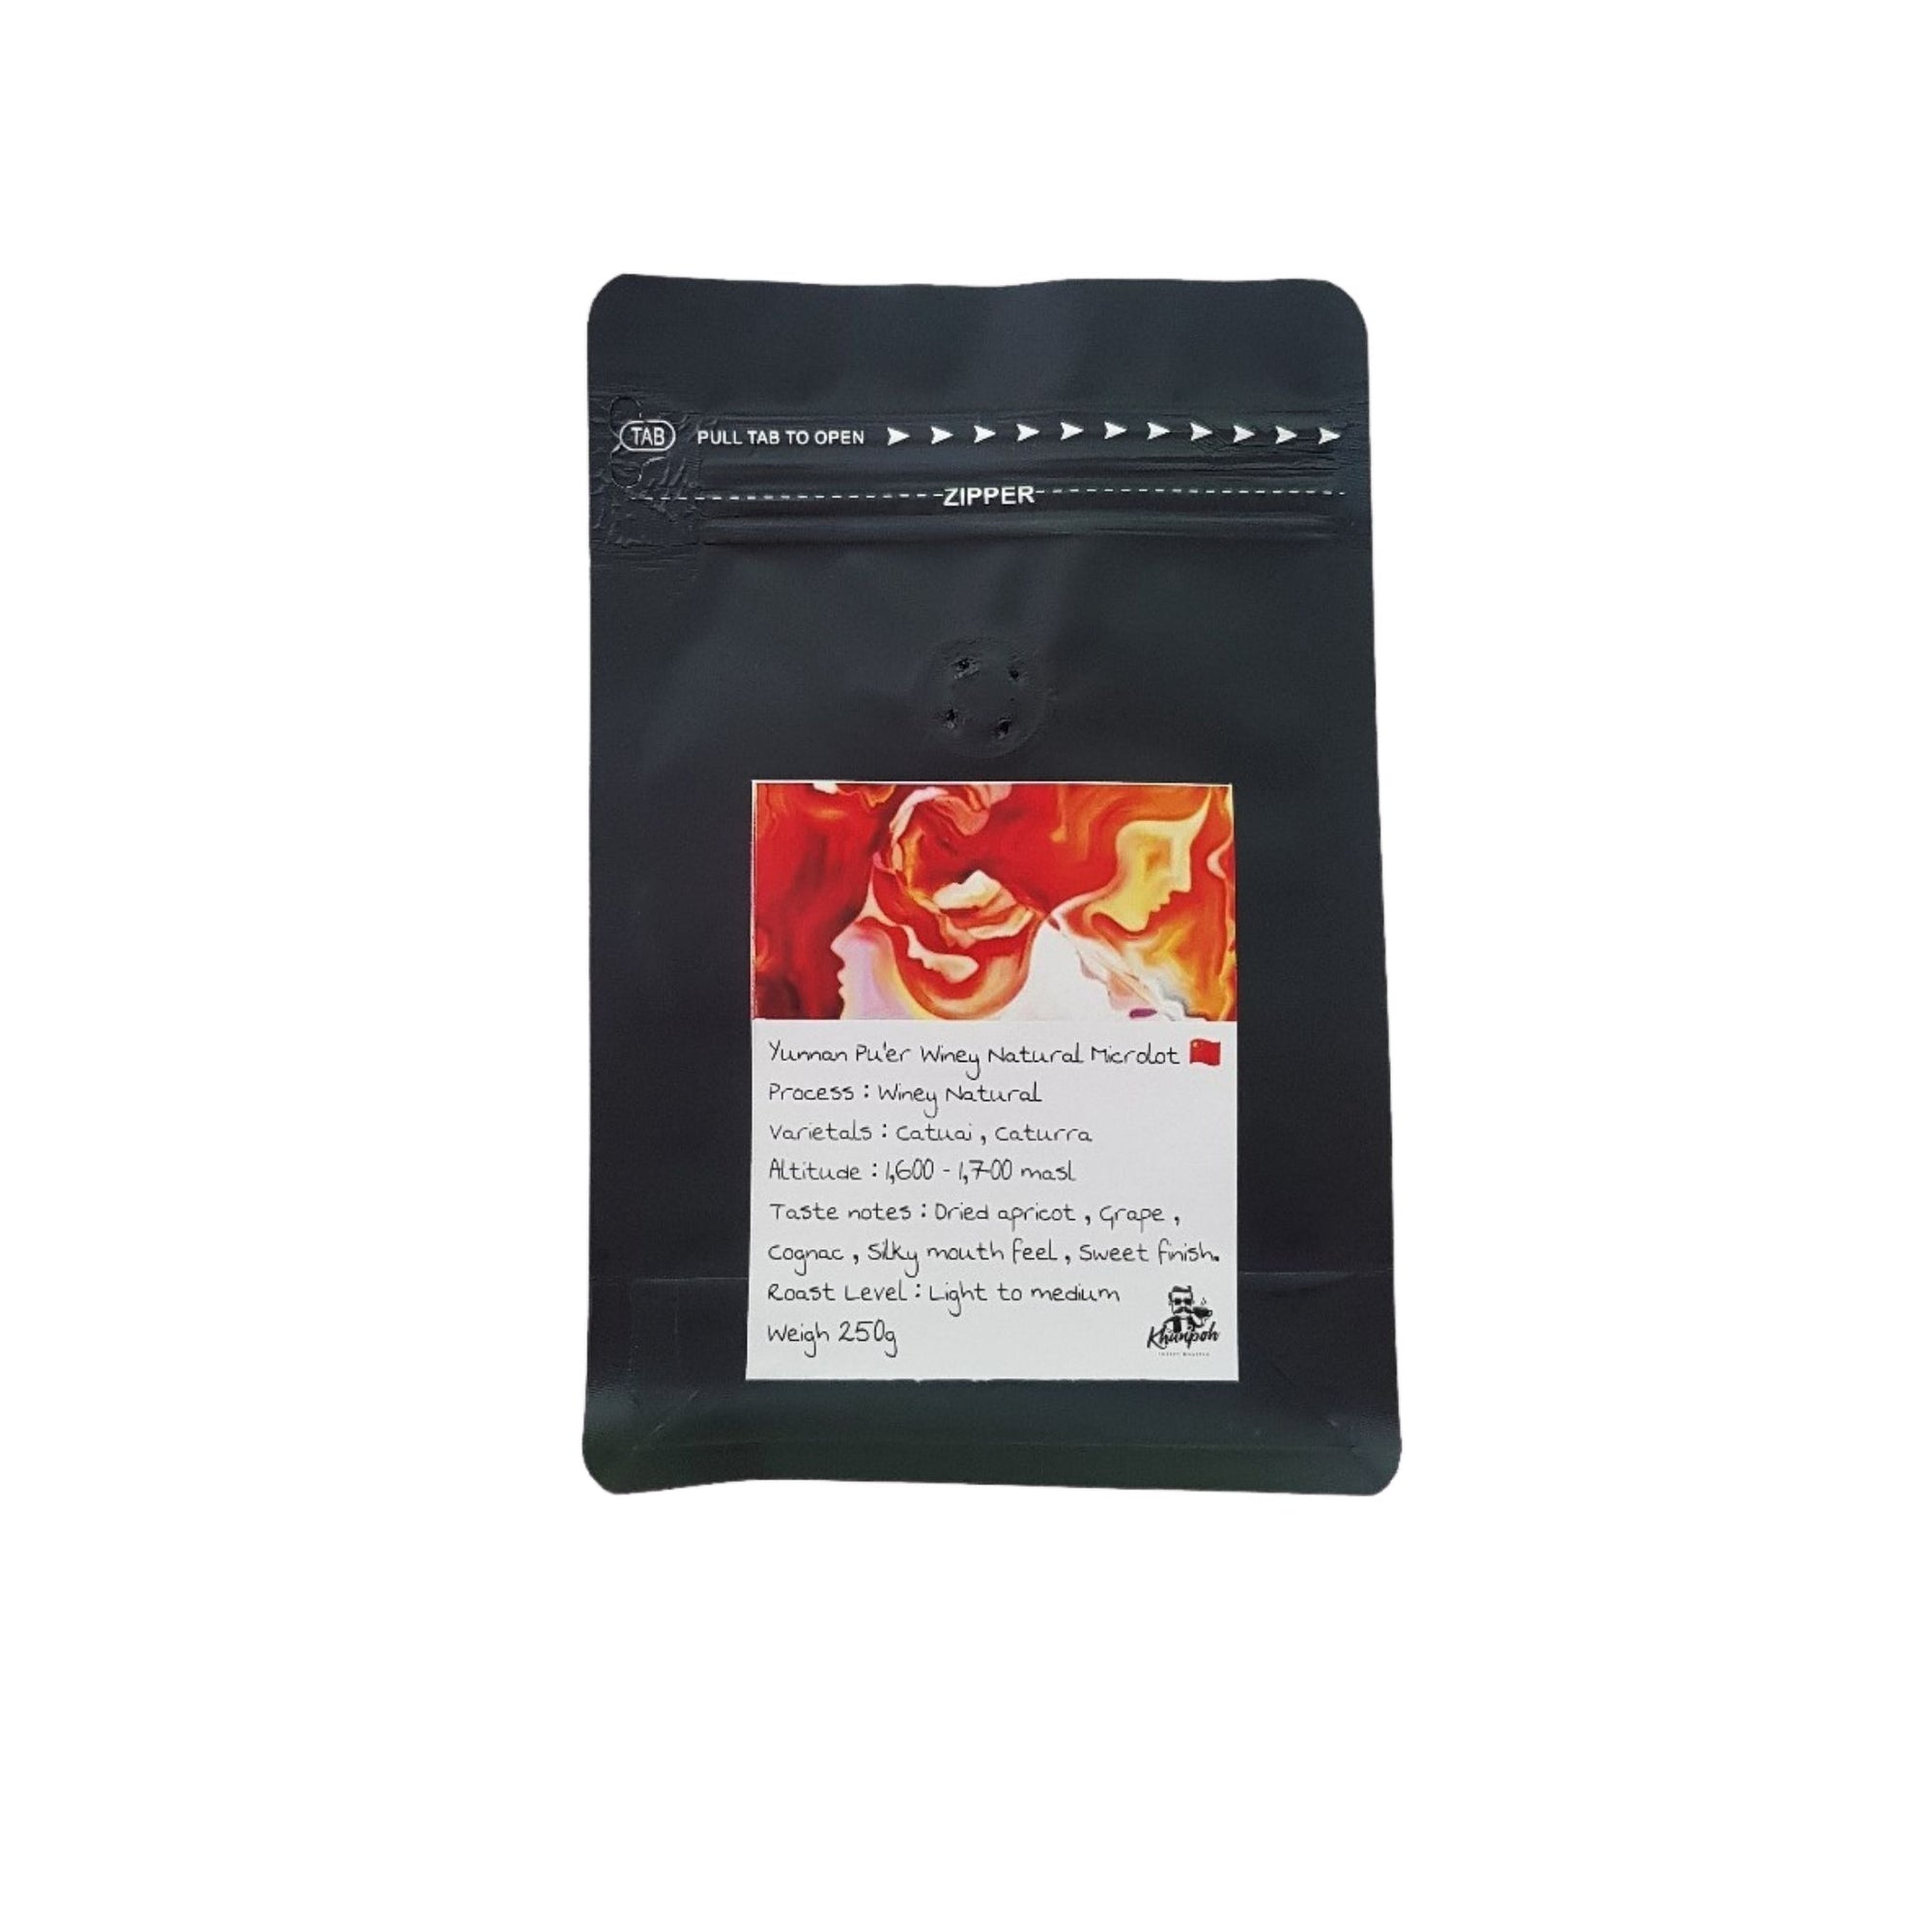 Yunnan Pu'er Winey Natural Microlot 500g